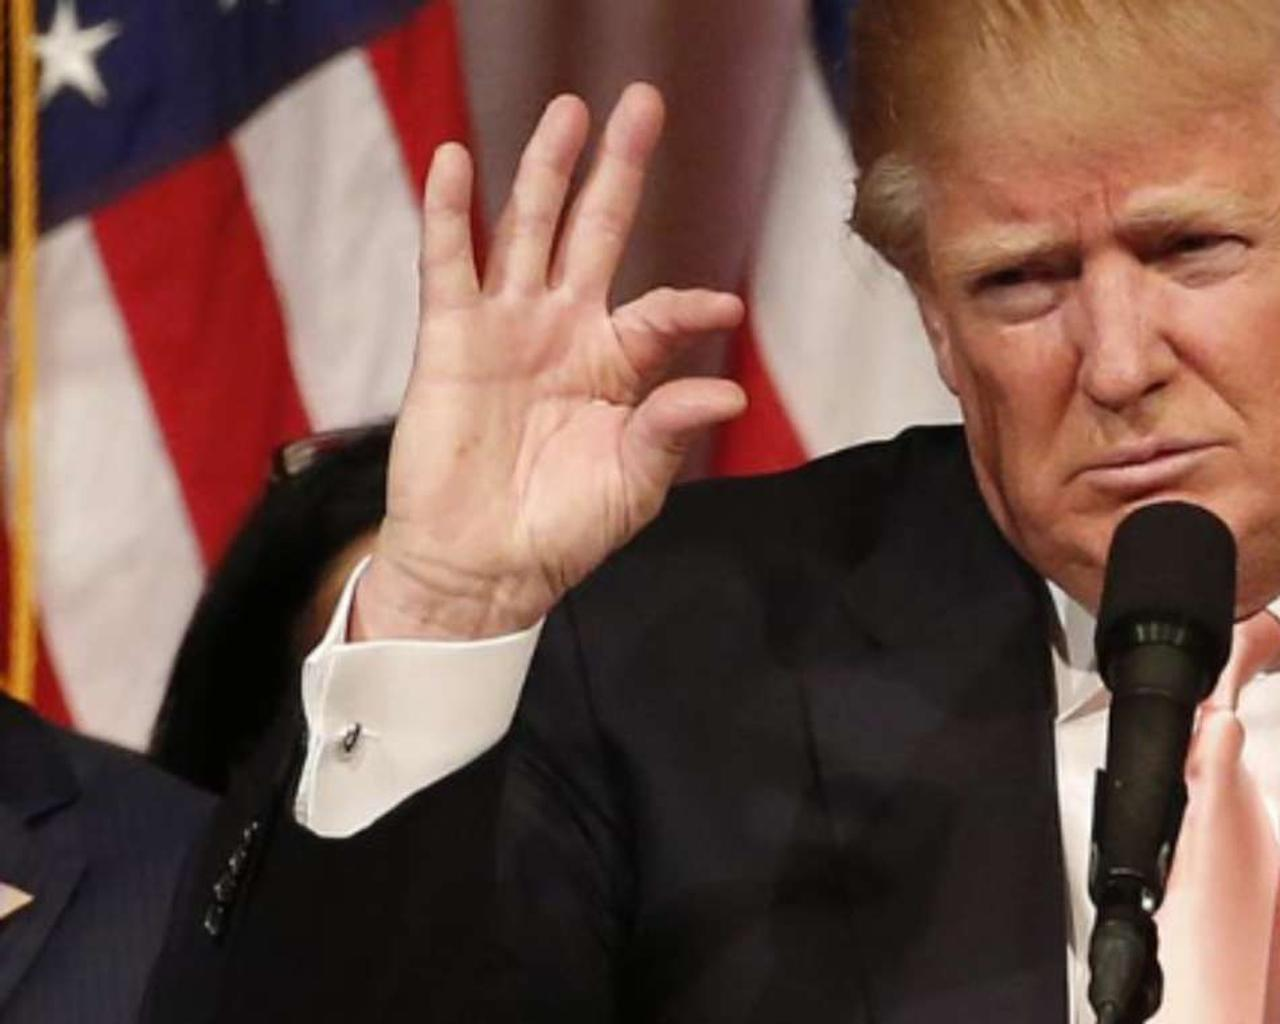 Donald Trump gave his support to Marco Rubio for his reelection in the United States Senate.